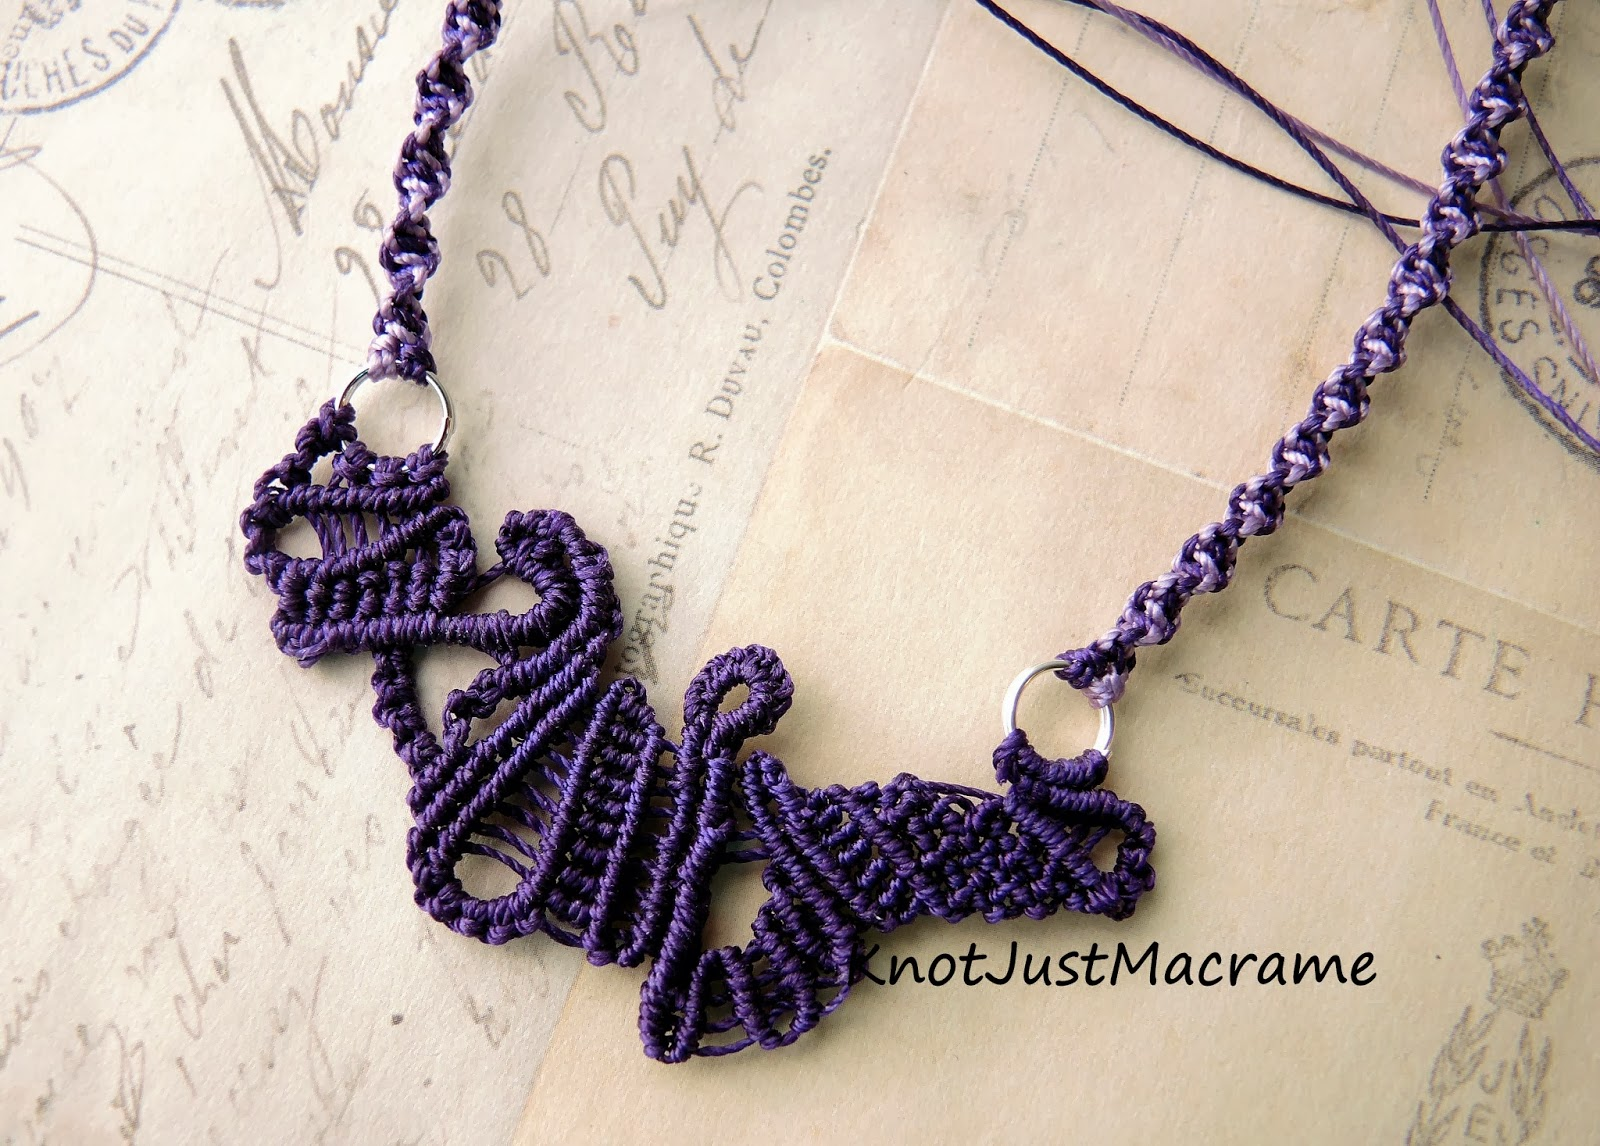 Free form knotting by Knot Just Macrame